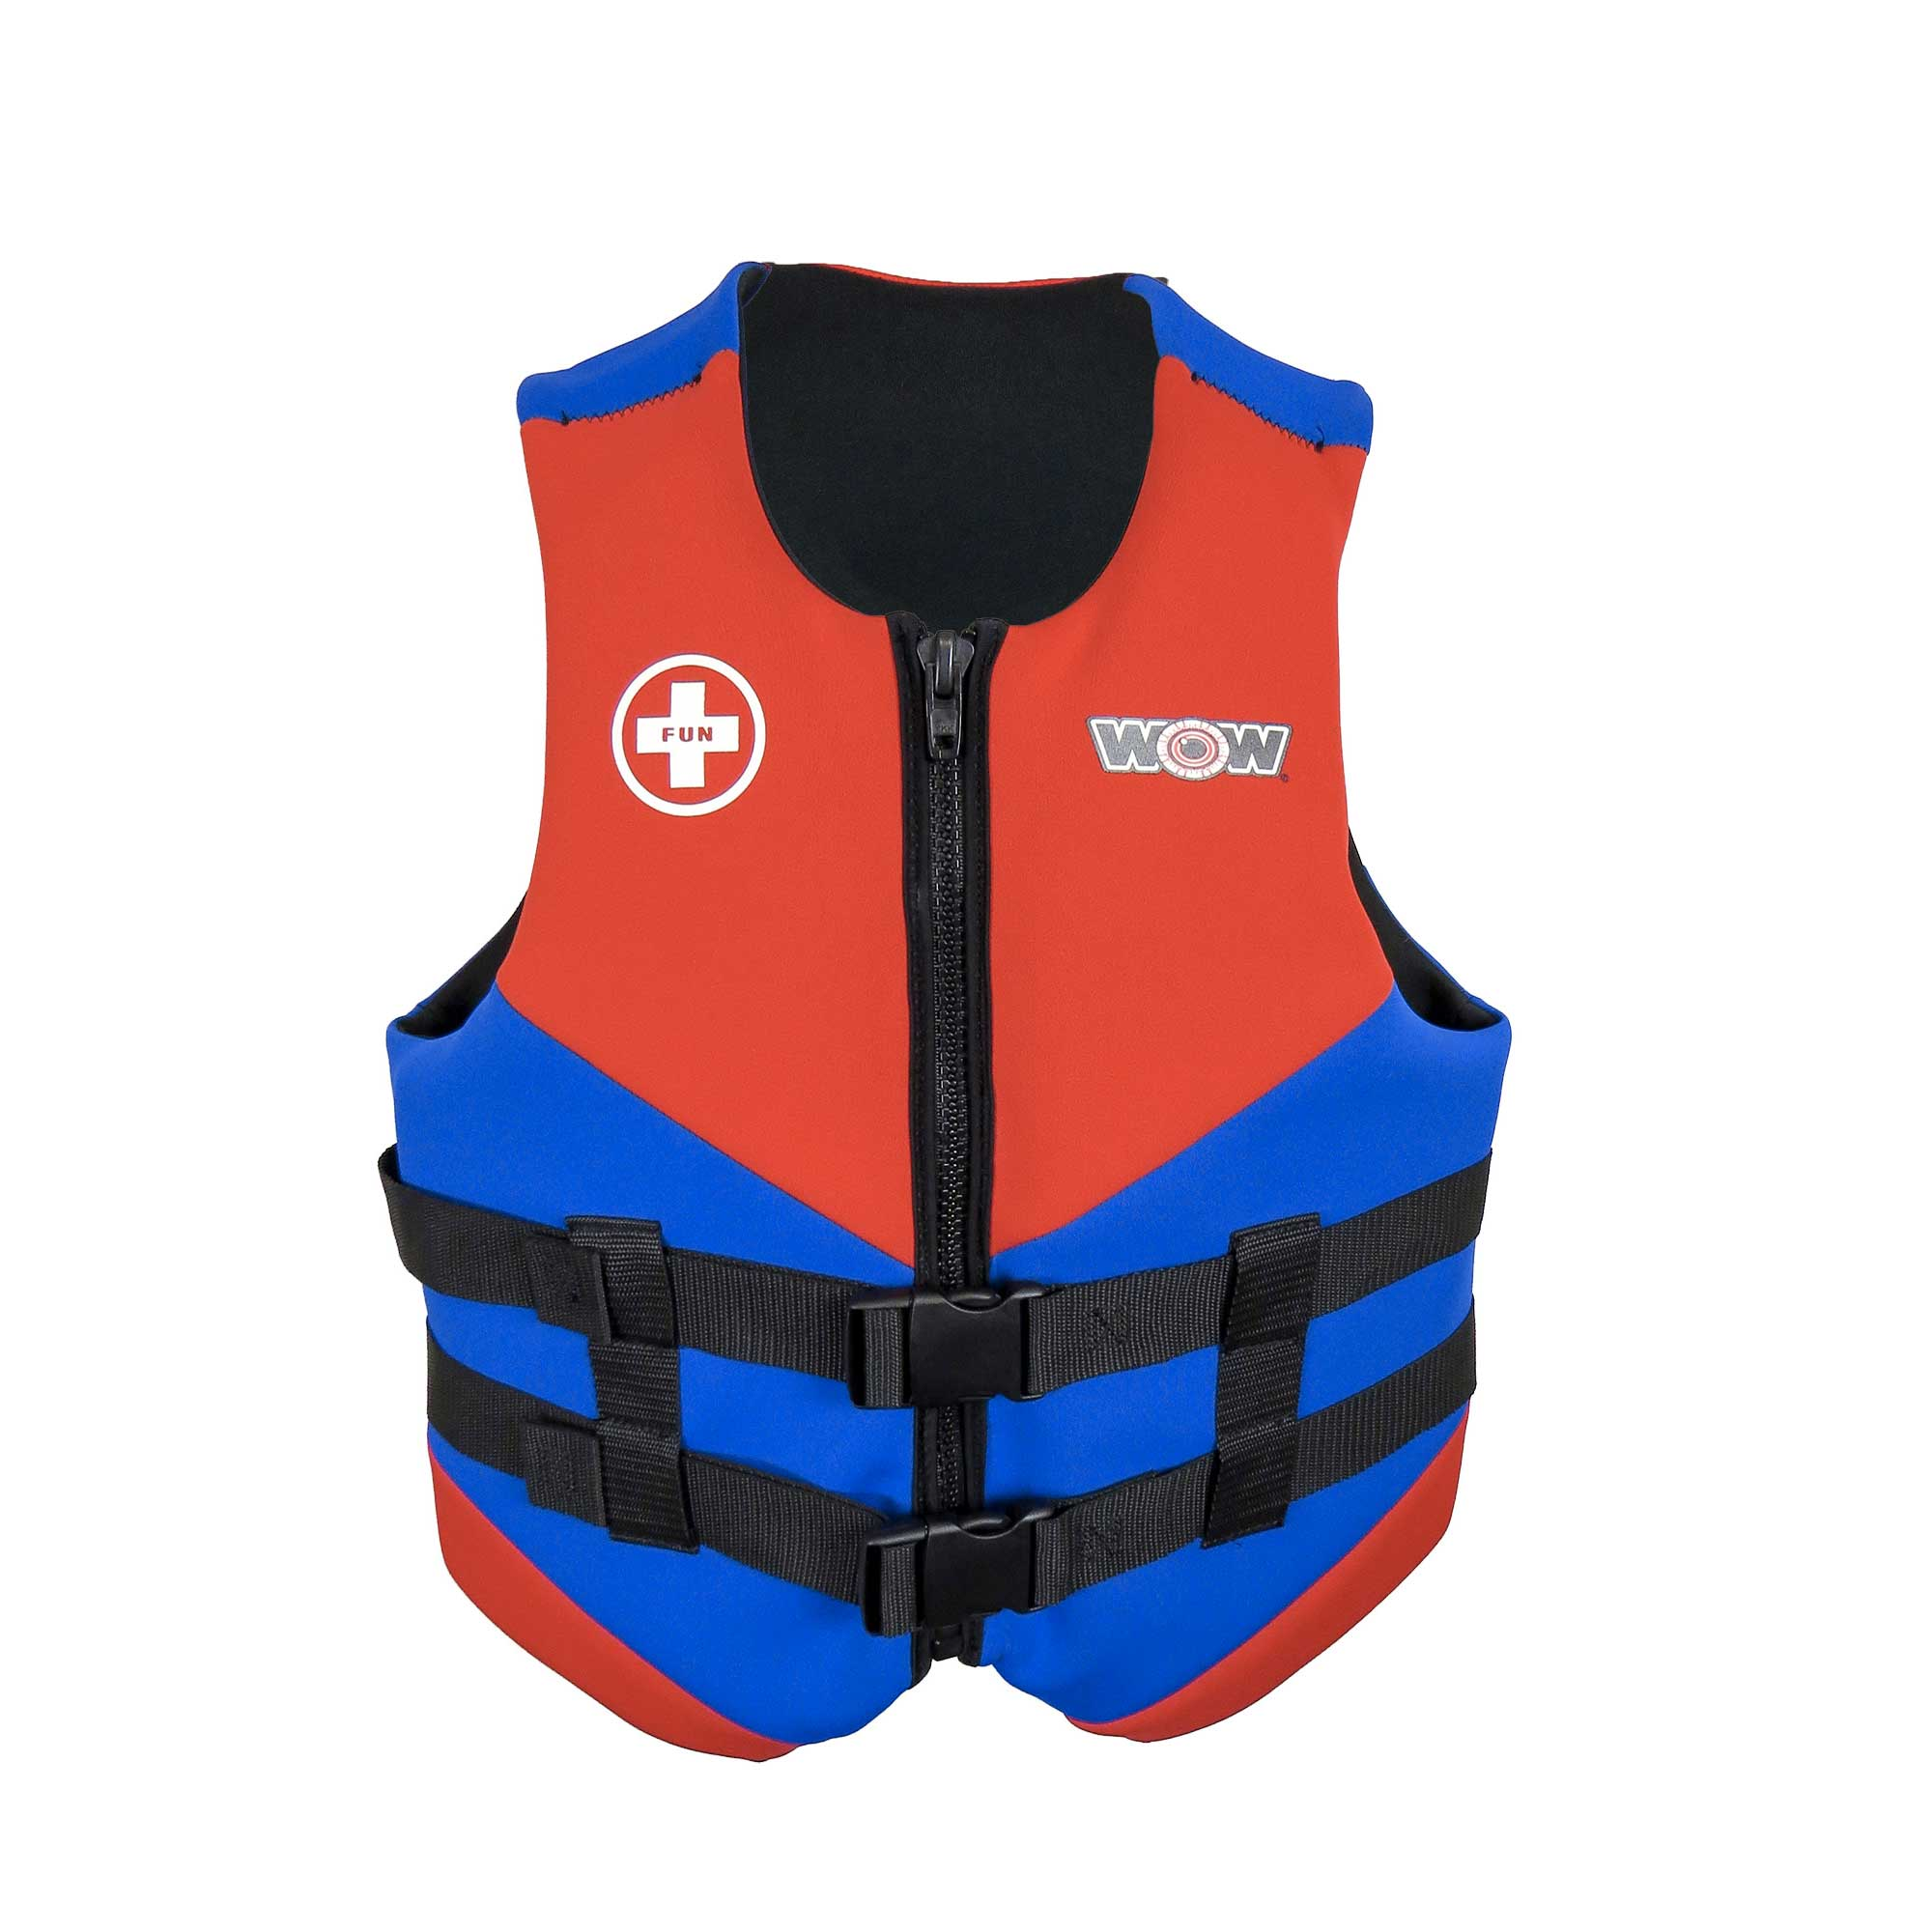 WOW: World of Watersports - Life Vest